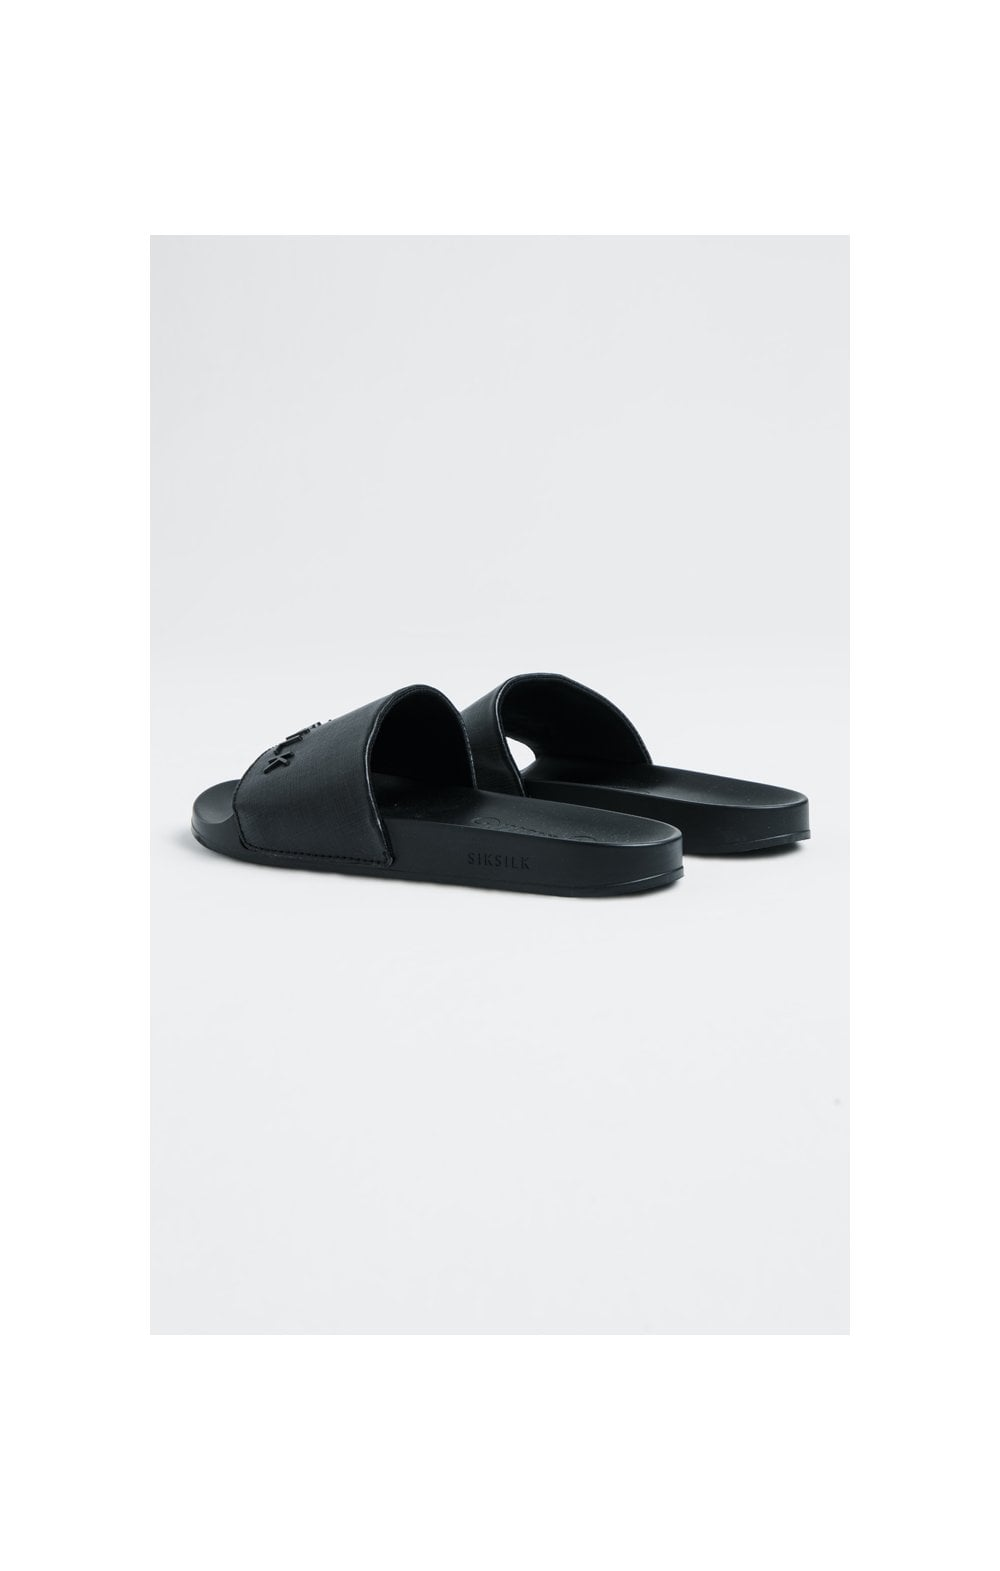 SikSilk Roma Slides – Black (2)